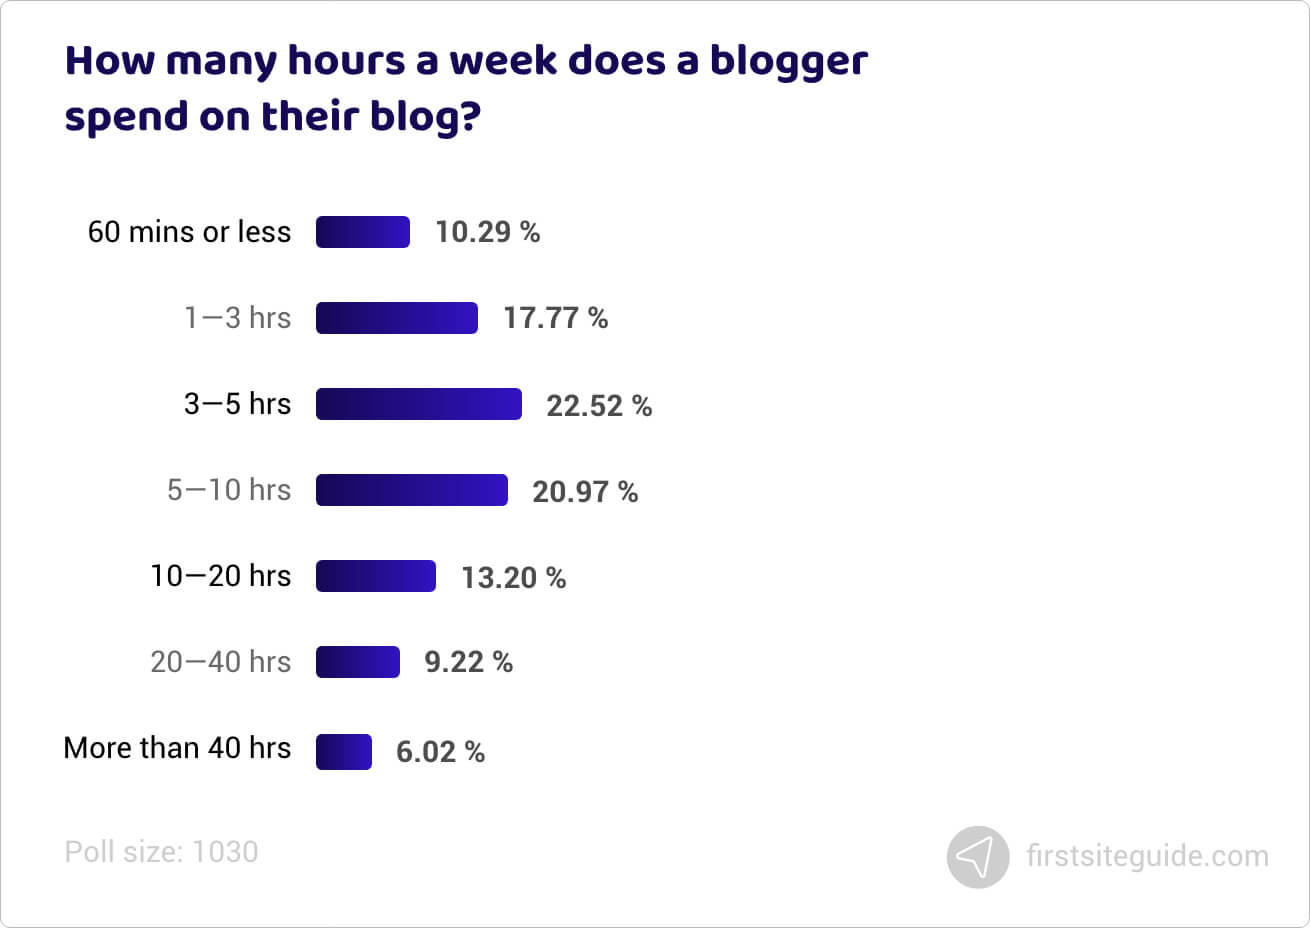 How many hours a week does a blogger spend on their blog